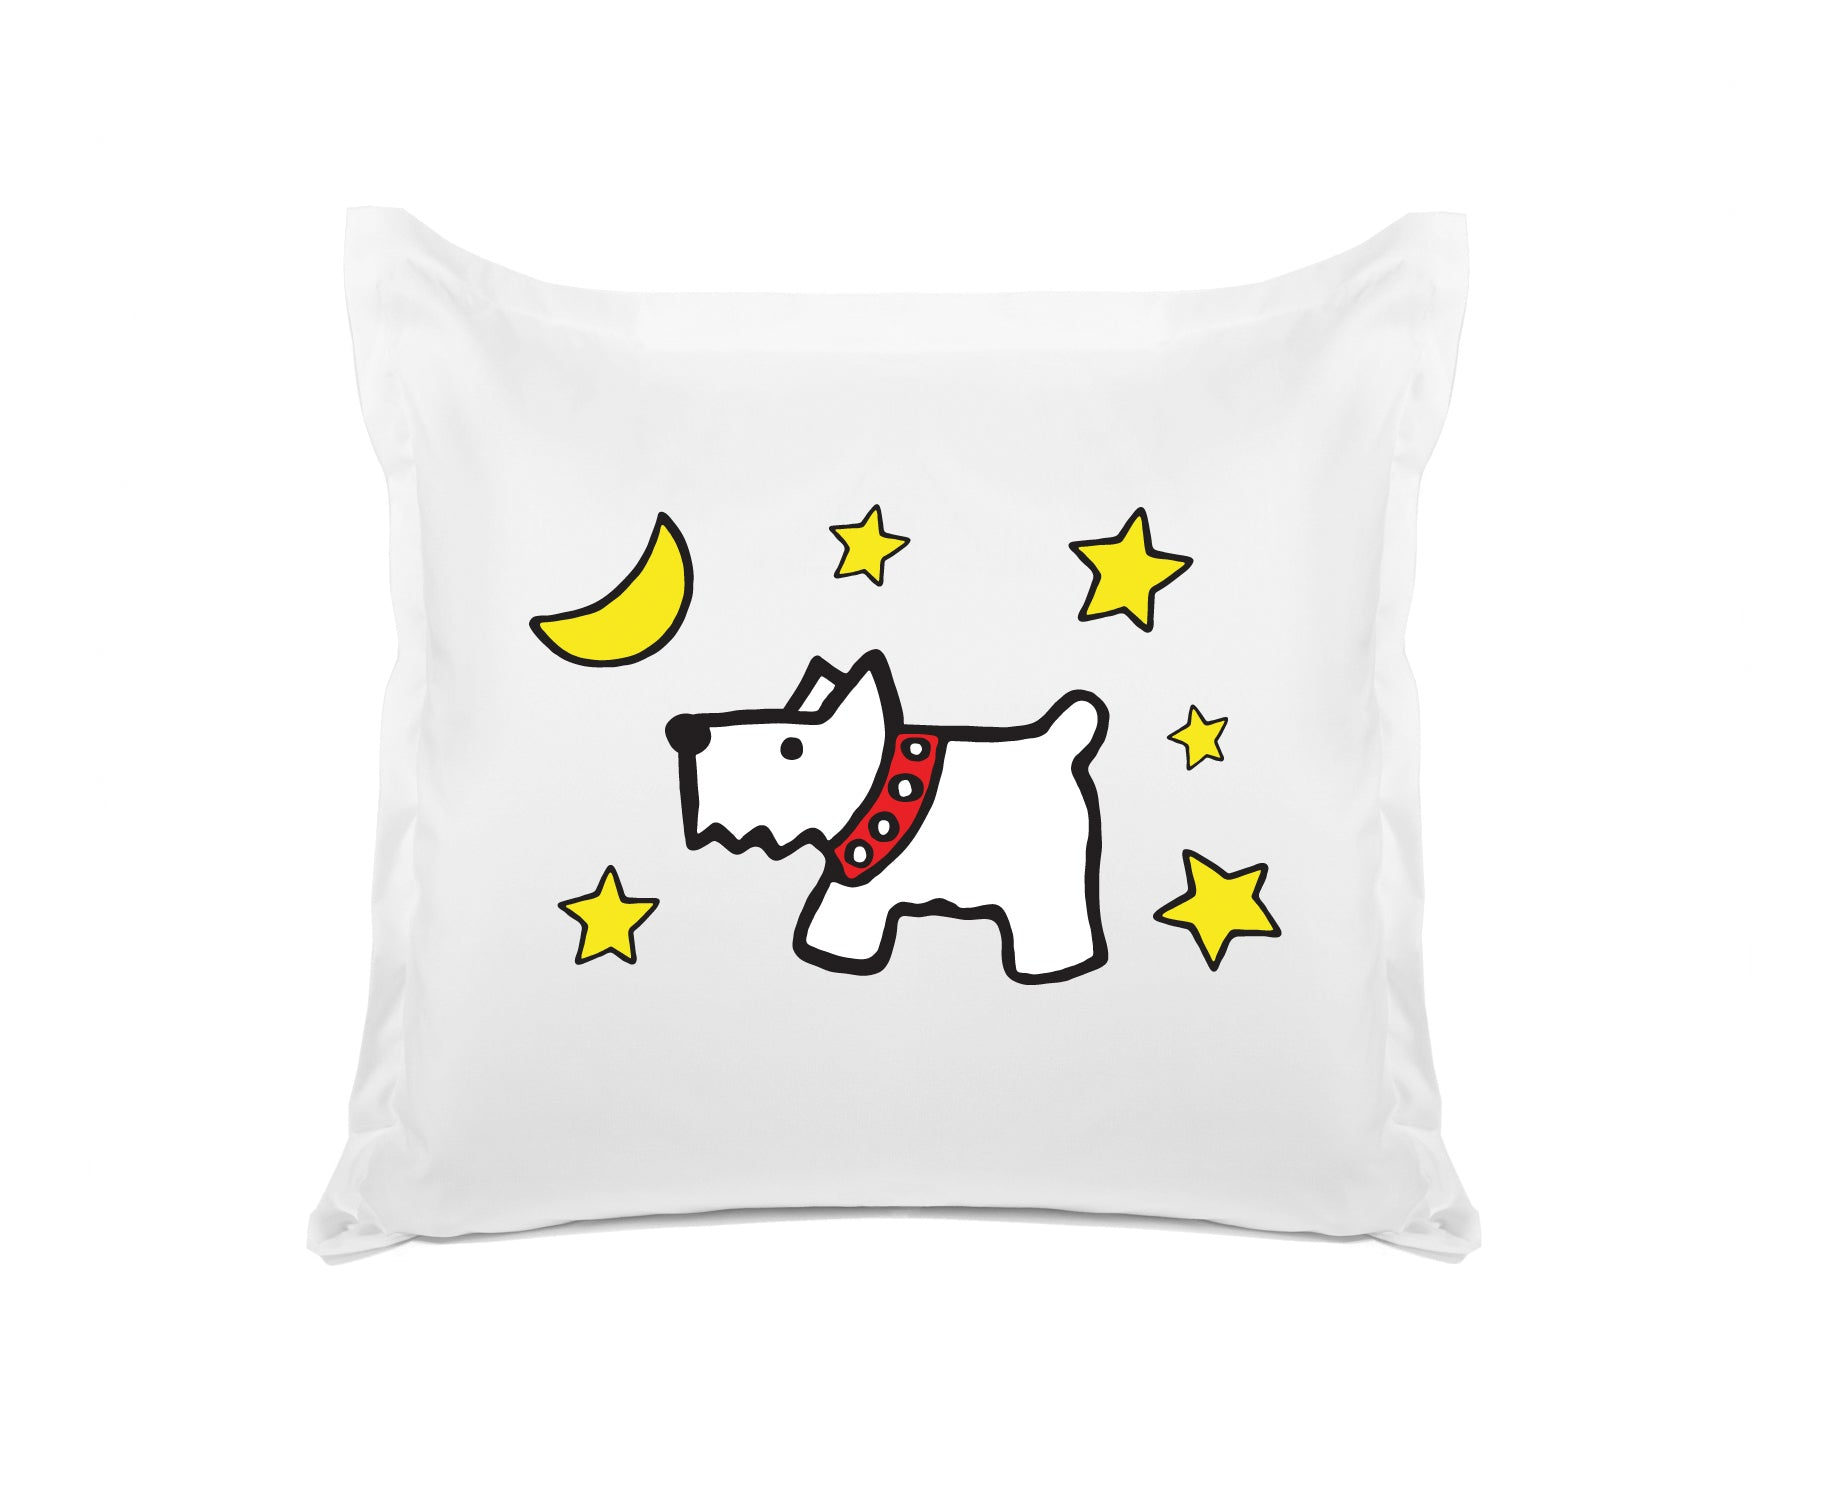 Moon Dog Kids Euro Sham Di Lewis Kids Bedding